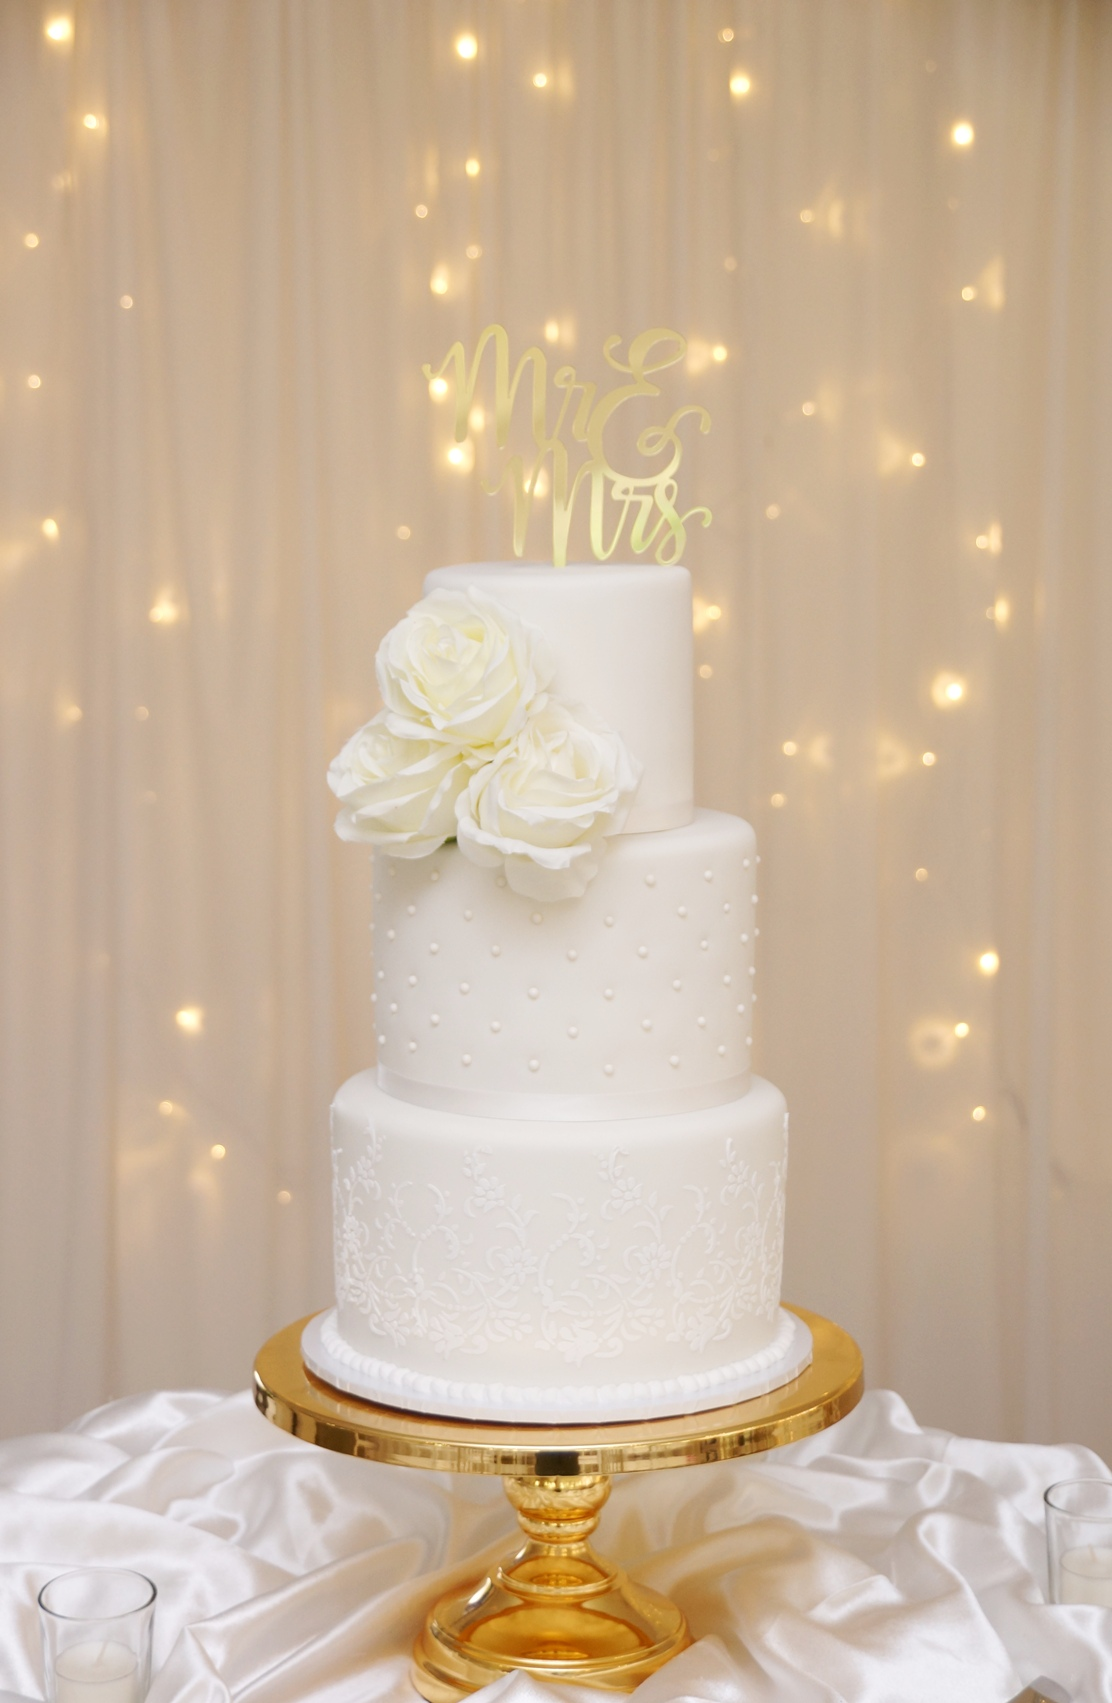 White fondant with white royal icing lac